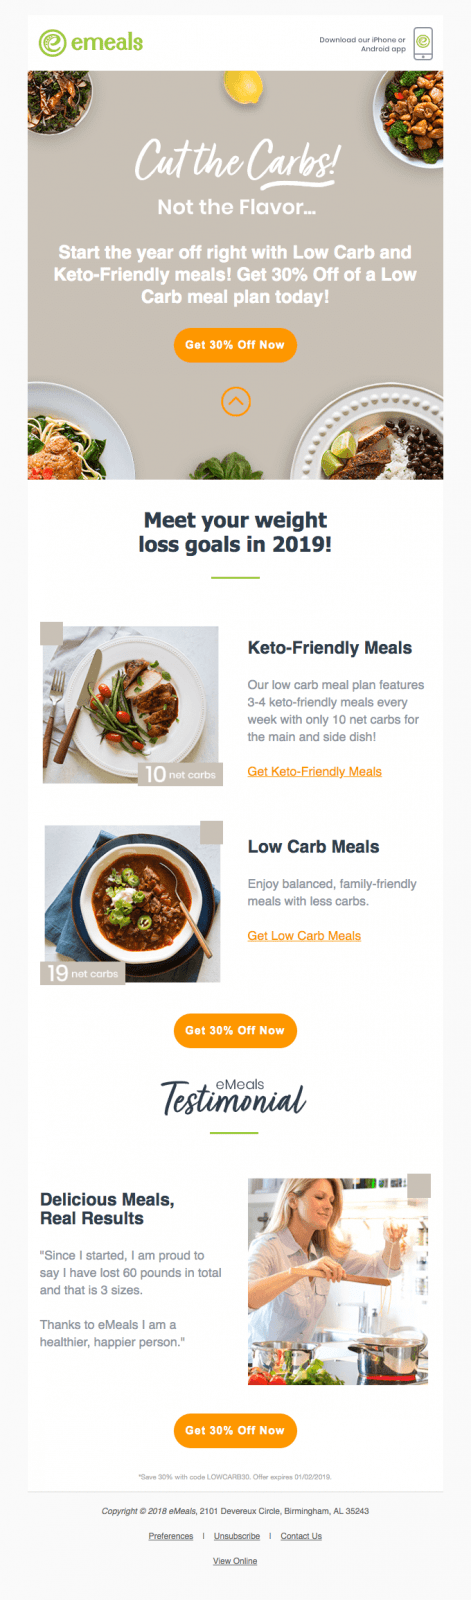 Email-Copywriting-Example-emeals